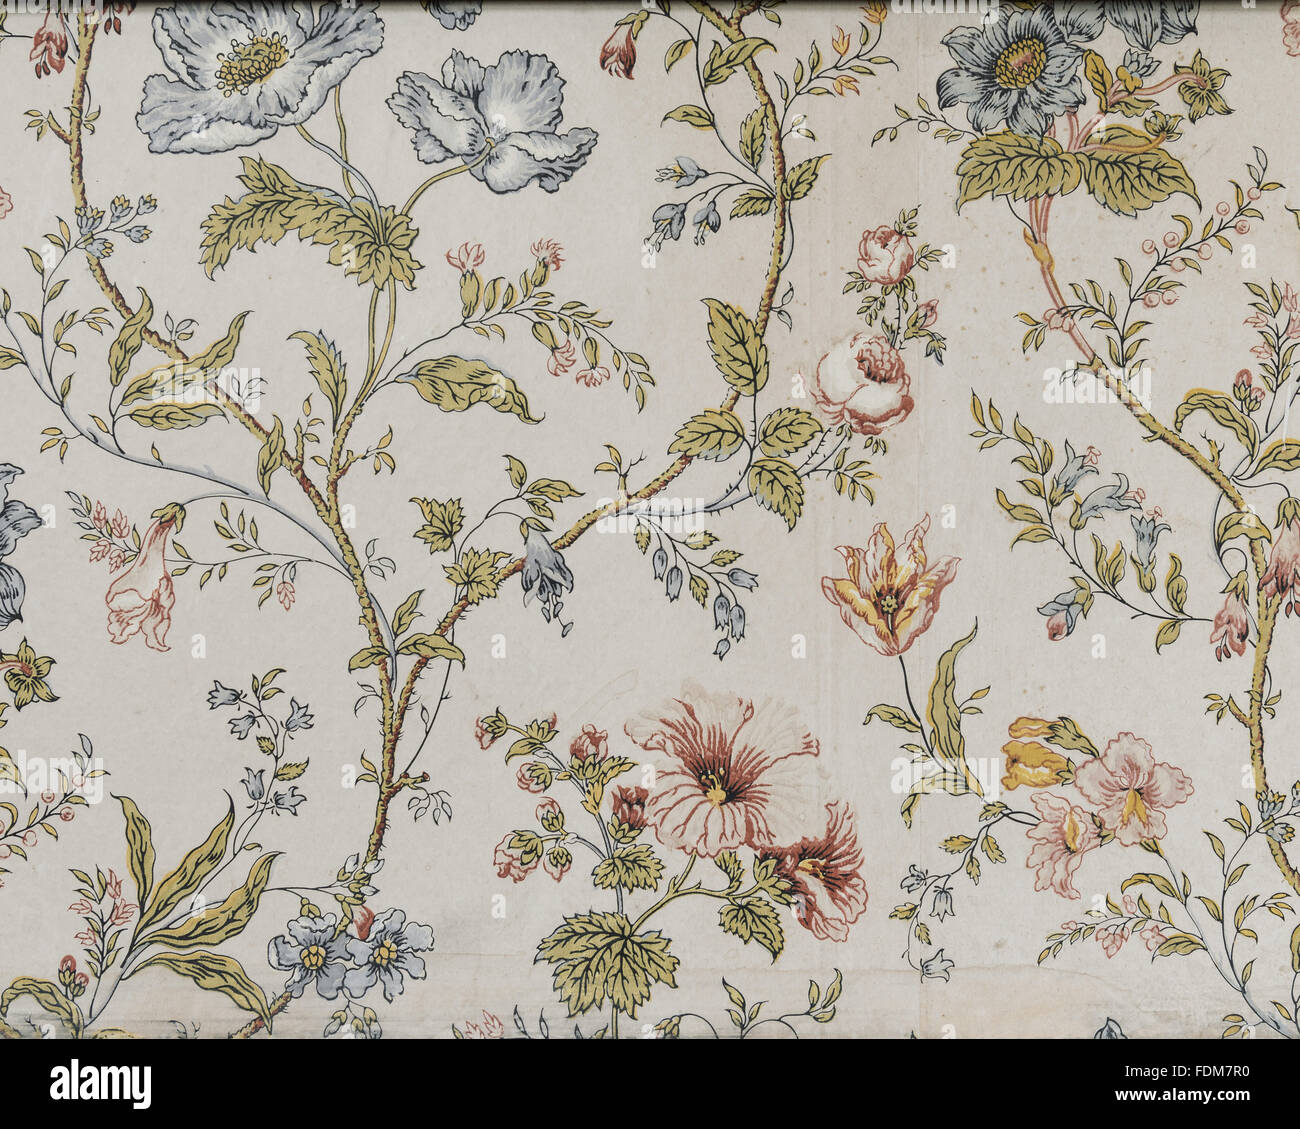 Detail of late nineteenth-century wallpaper with floral design in the Wisteria Bedroom at Dunster Castle, Somerset. - Stock Image